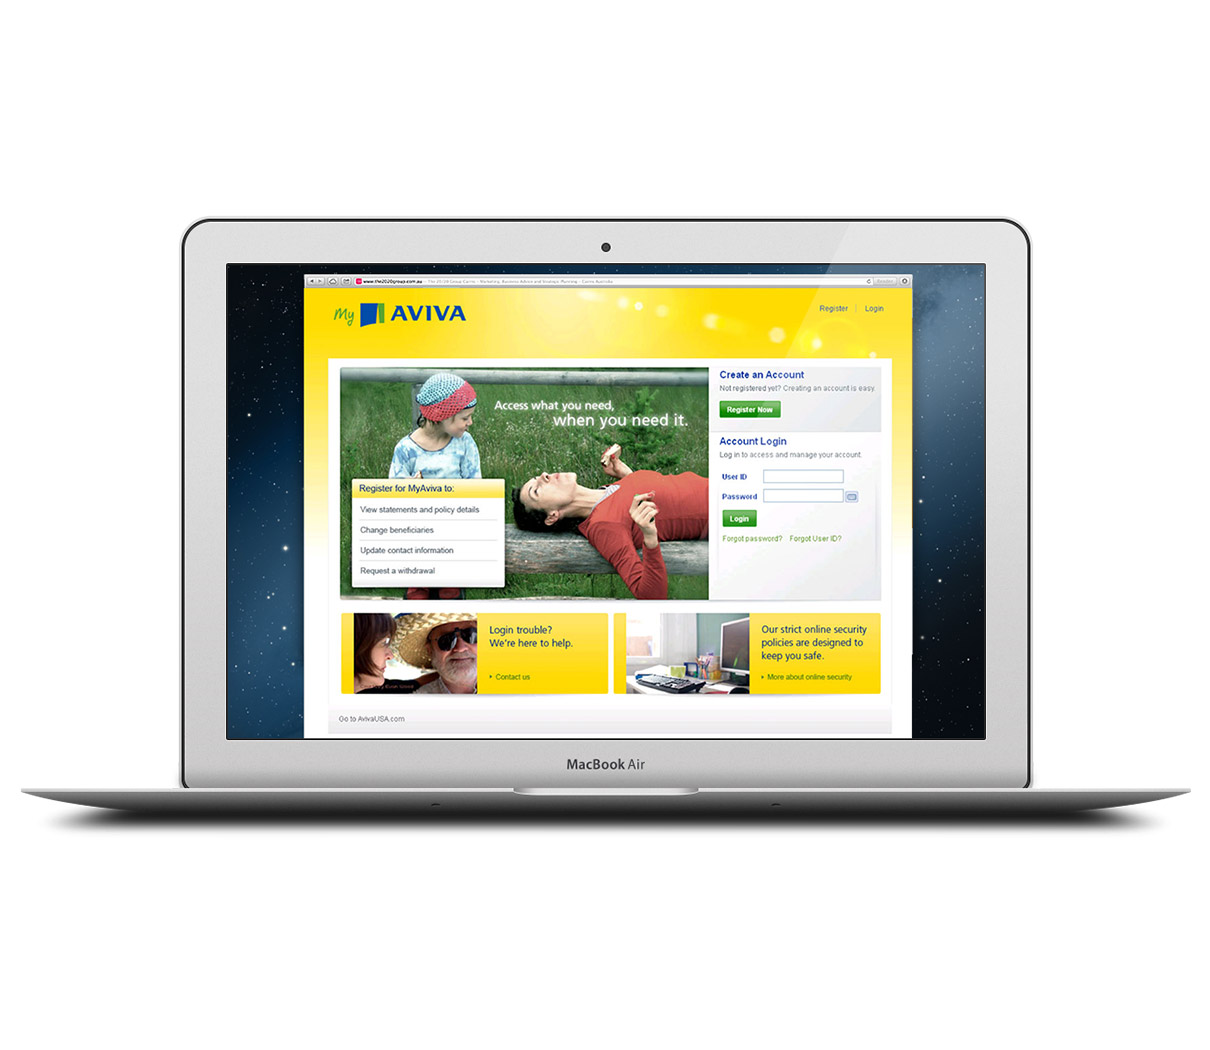 Laptop showing the Aviva Customer Portal